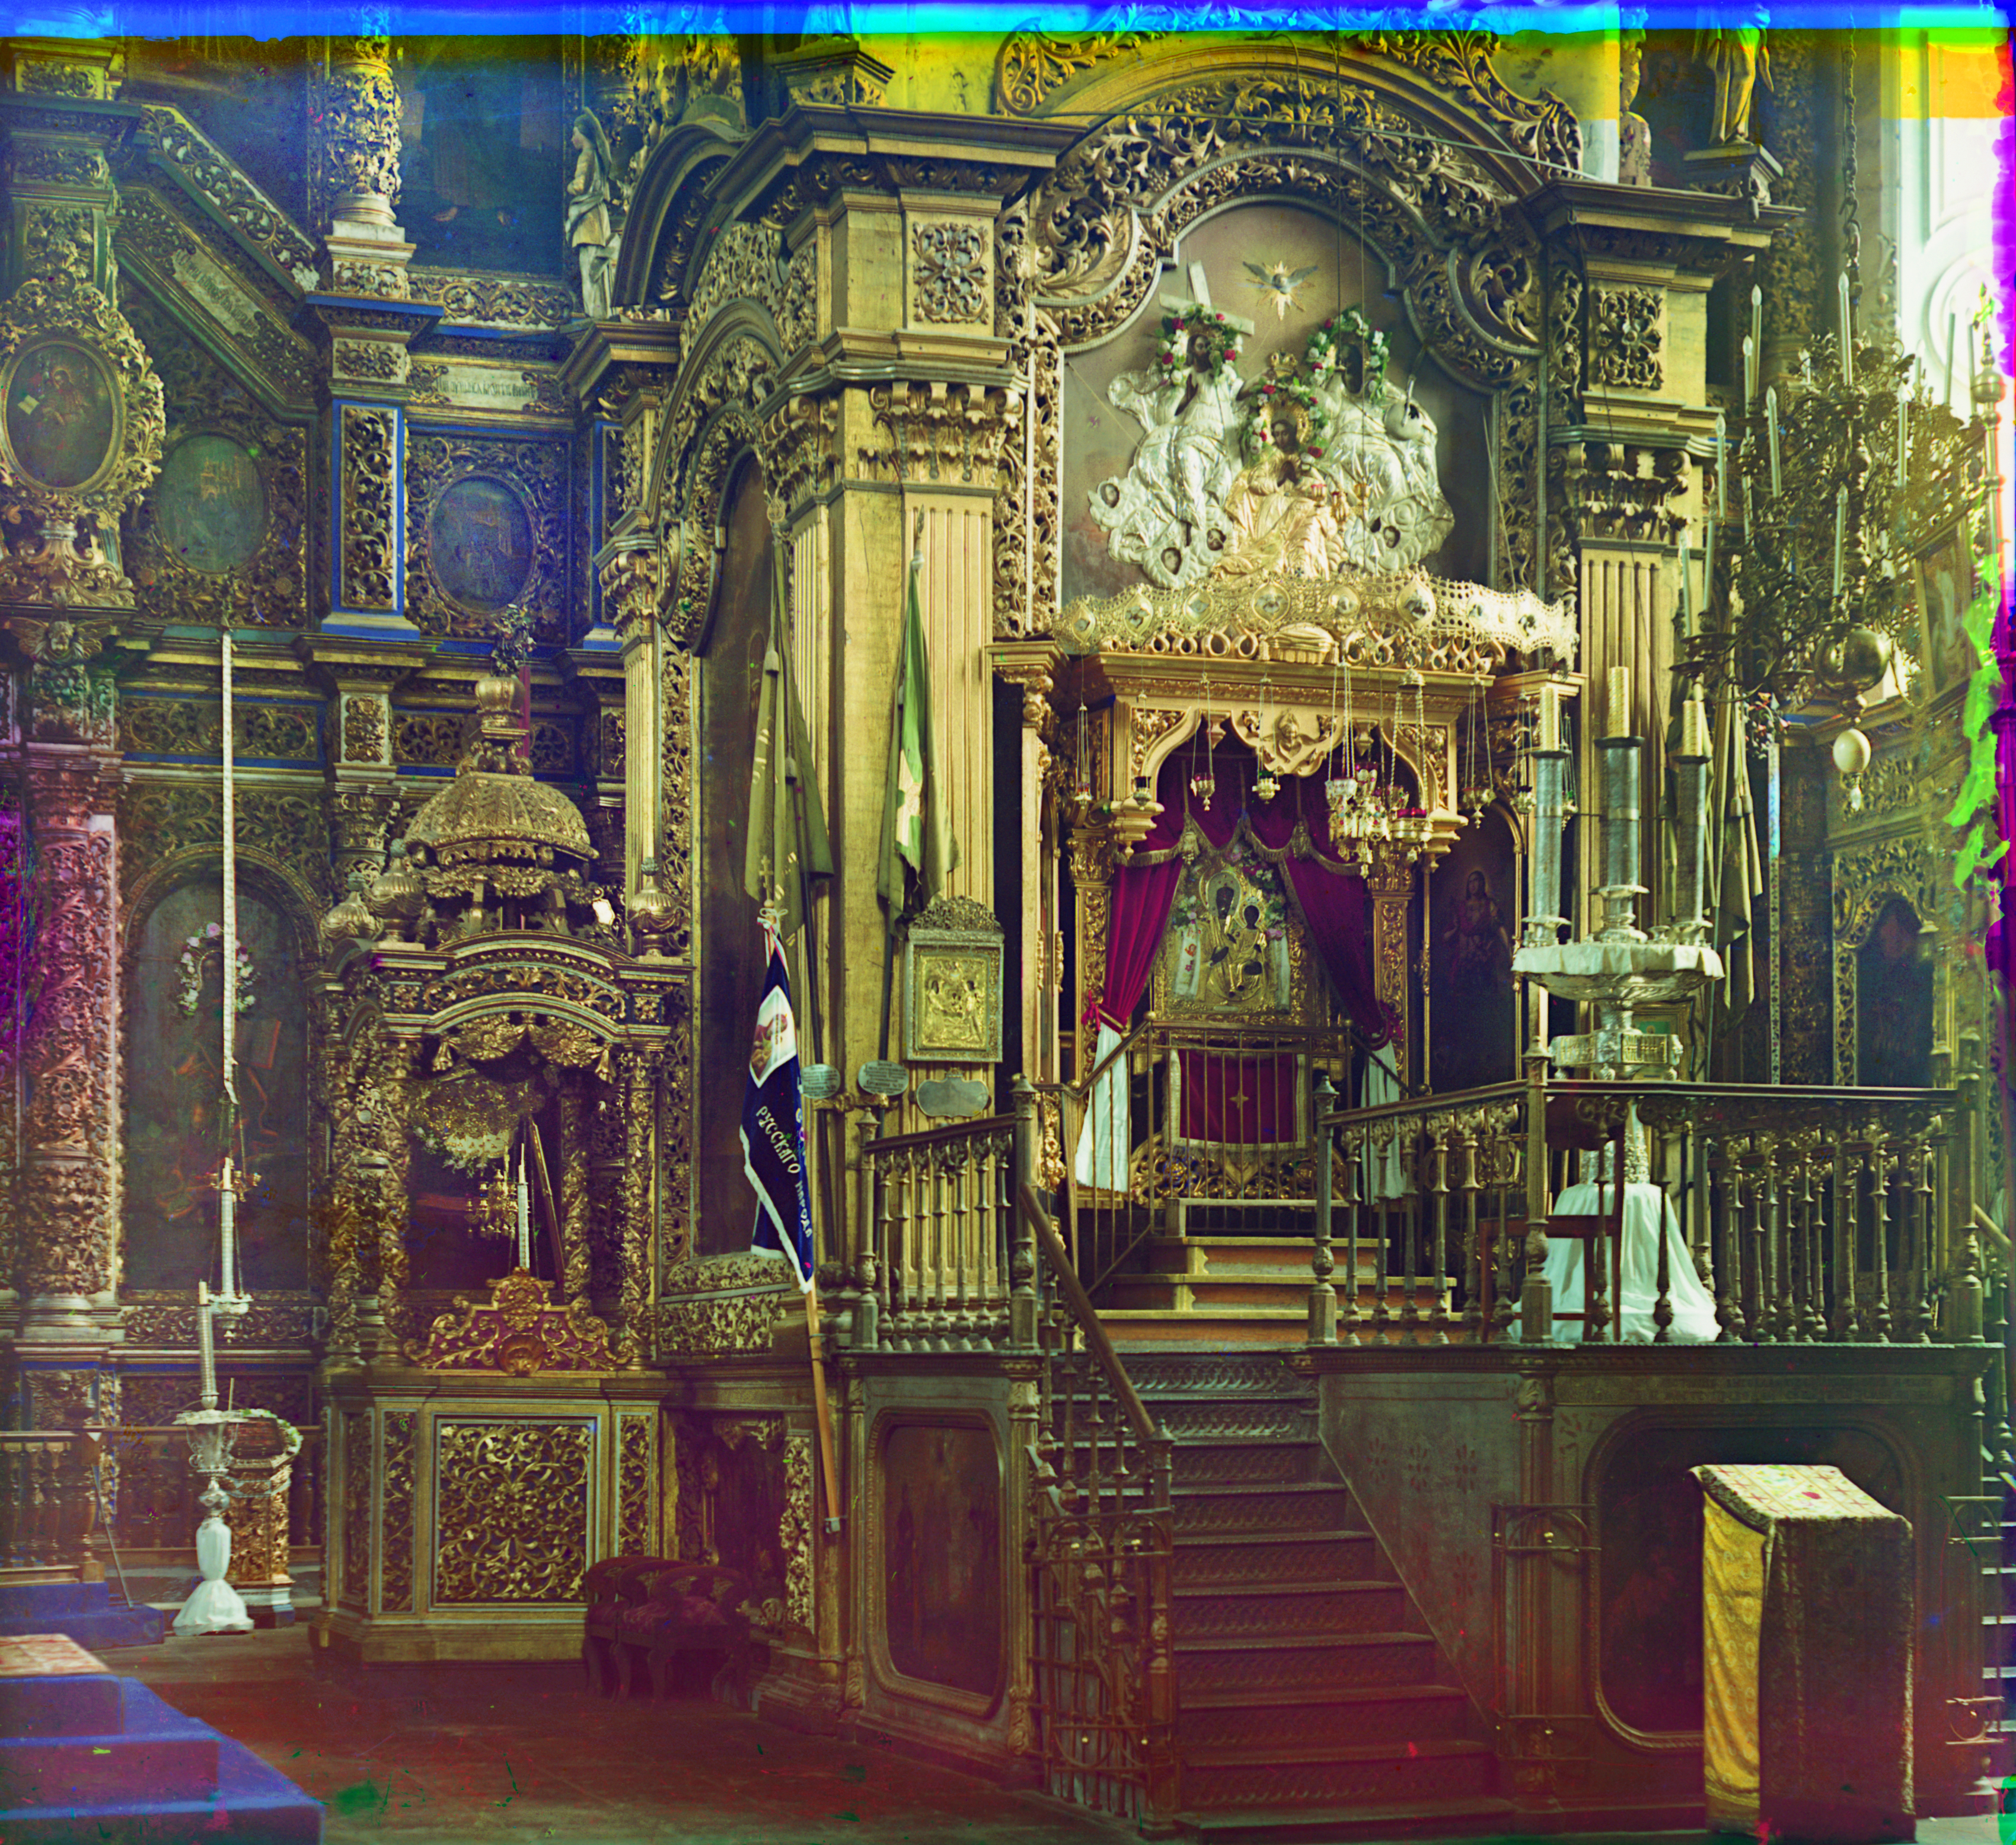 Dormition Cathedral, interior, view of baldachin with Smolensk Icon. Summer 1911. / Photo: Sergei Prokudin-Gorsky